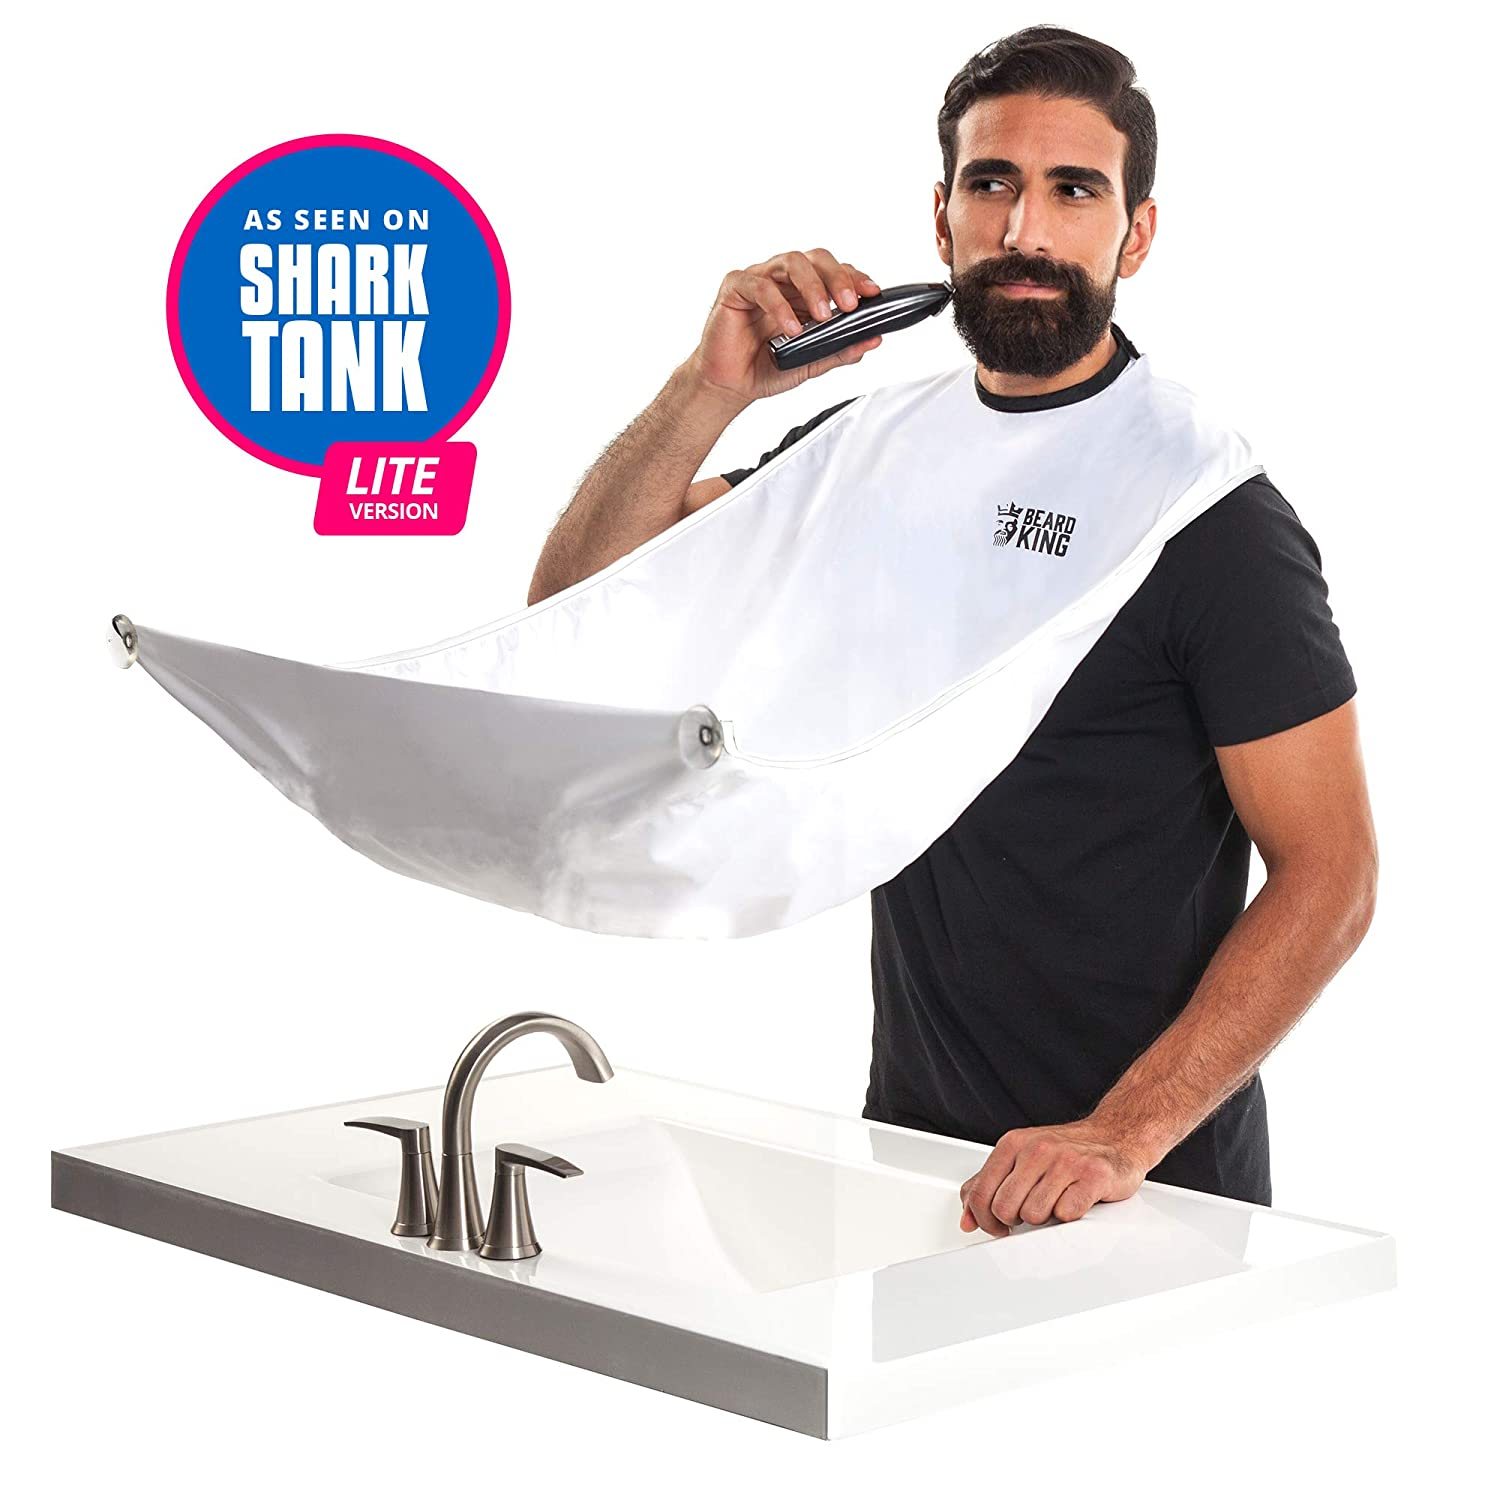 "BEARD KING - The Official Beard Bib - Hair Clippings Catcher & Grooming Cape Apron - ""As Seen on Shark Tank"" - White (Lite Version)"